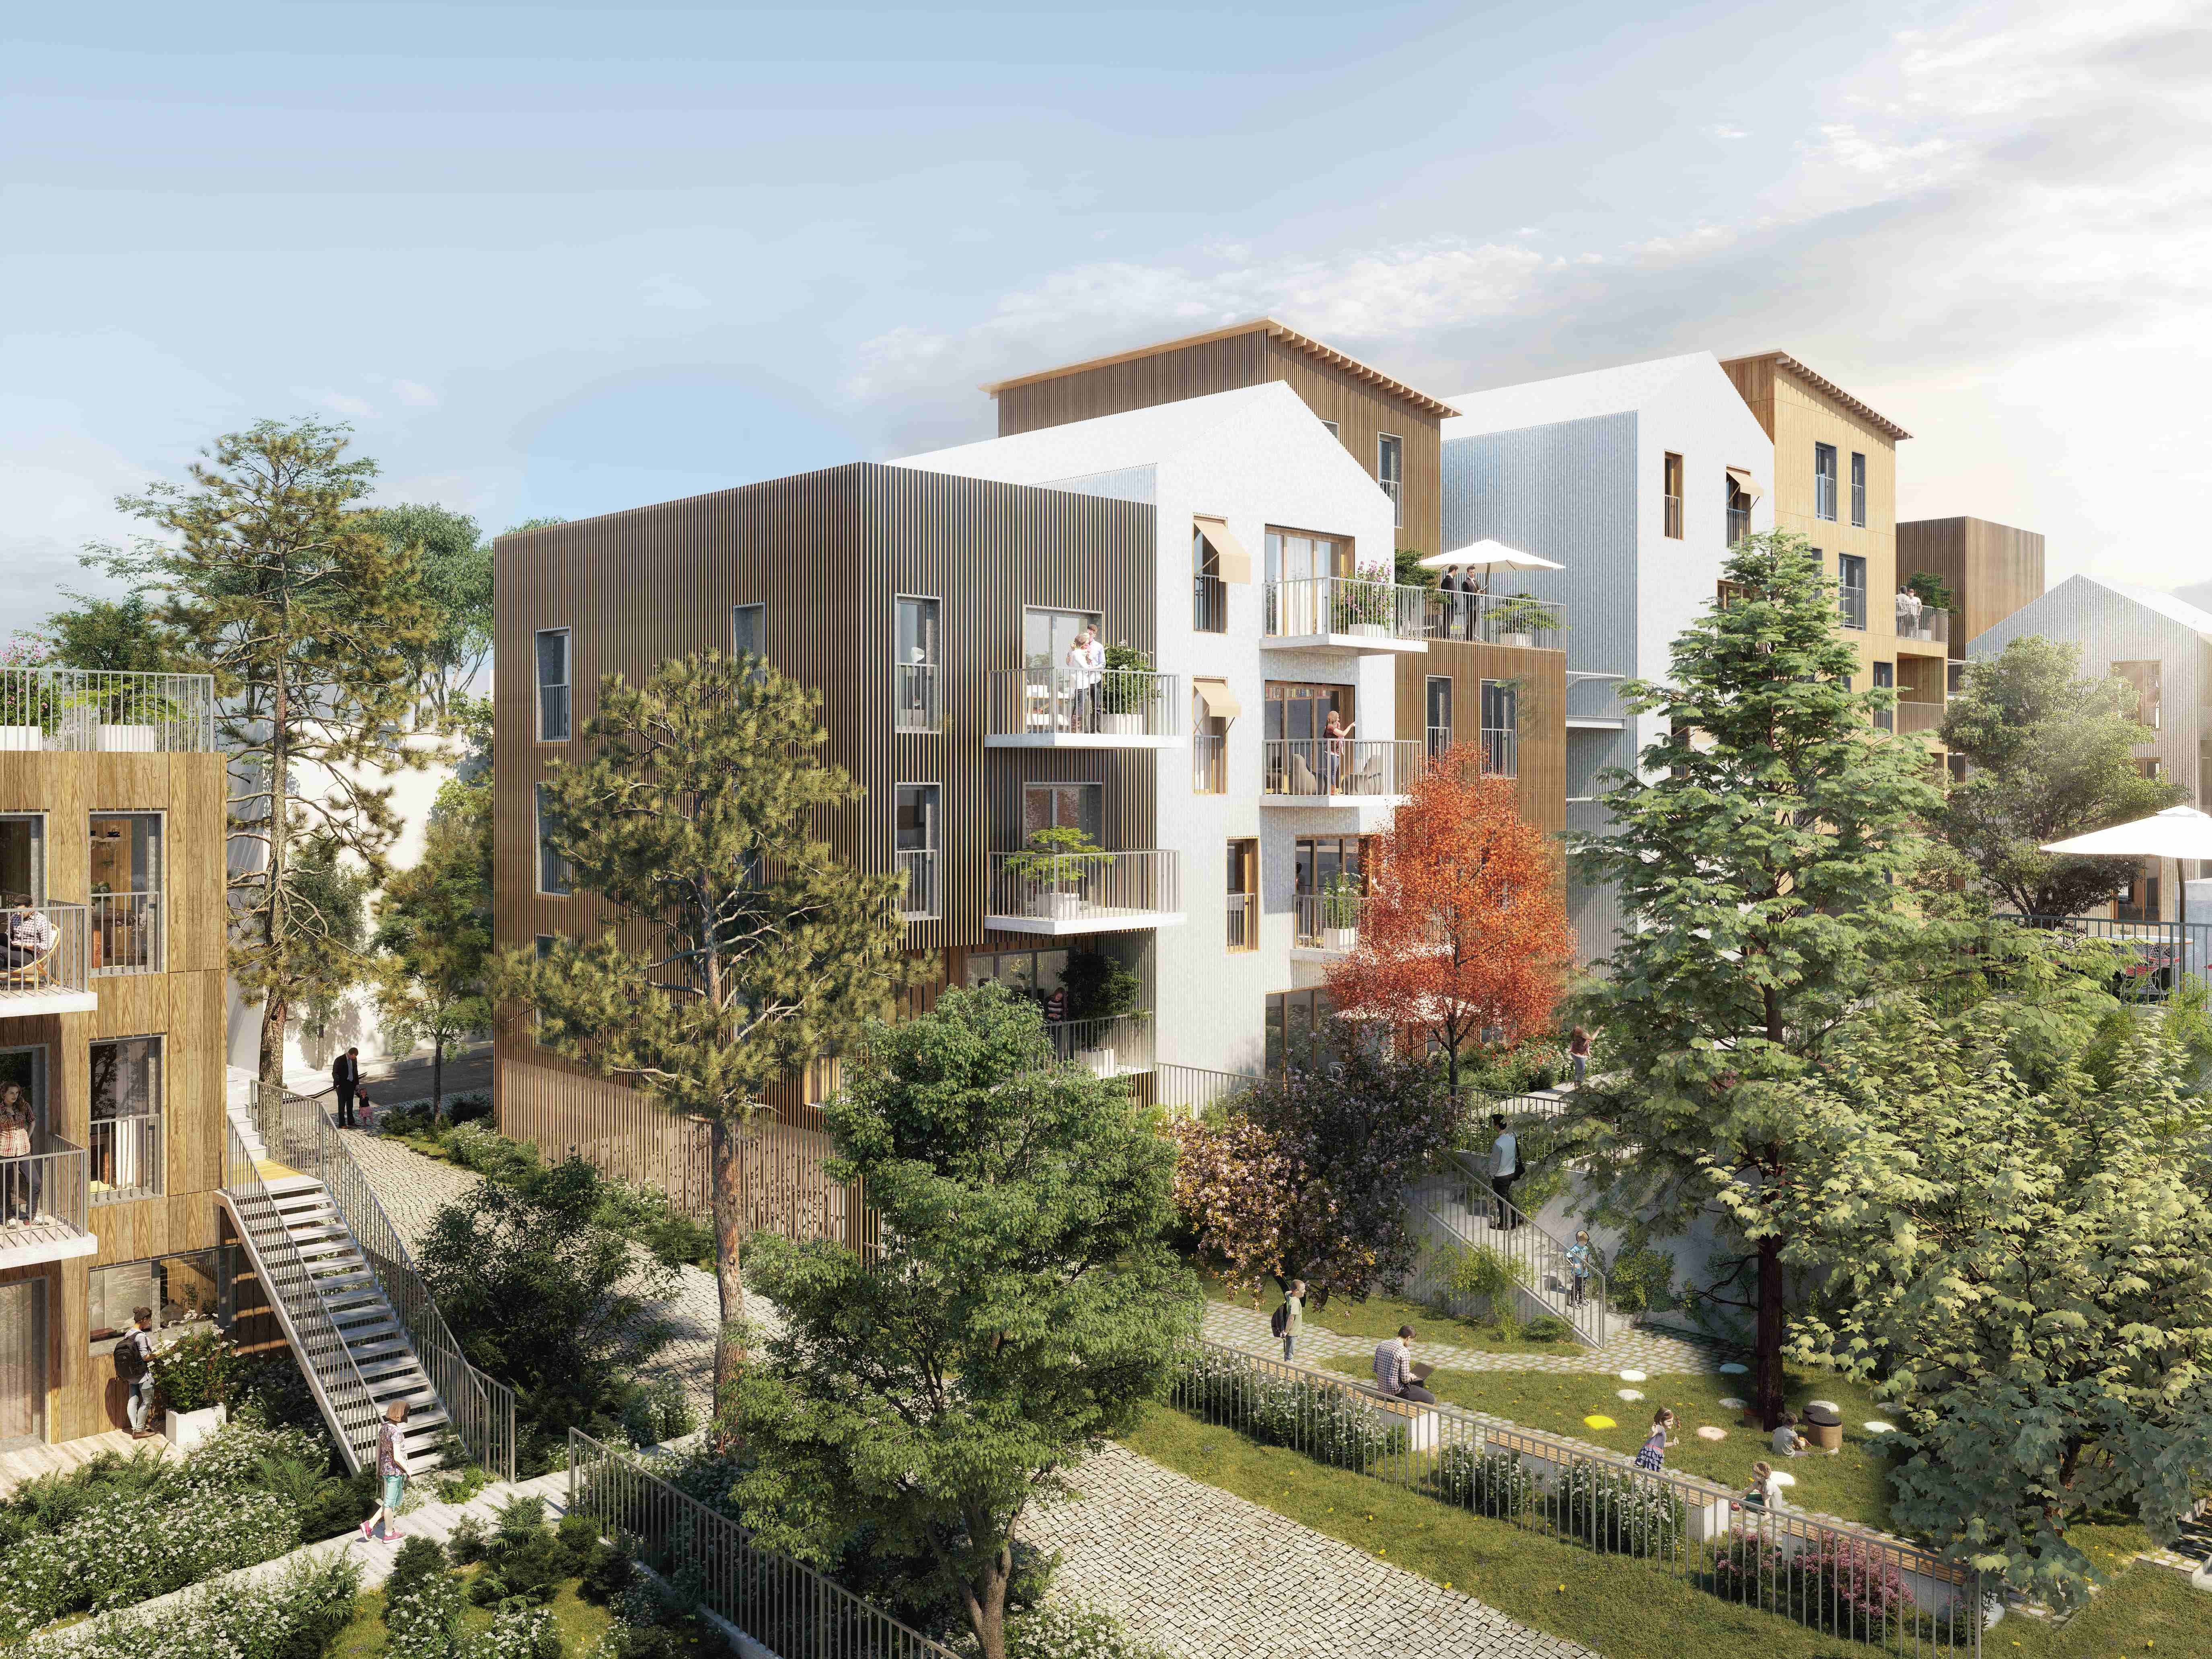 INTERCONSTRUCTION ET AFC Promotion retiennent ECOLOGGIA pour la construction de 92 logements